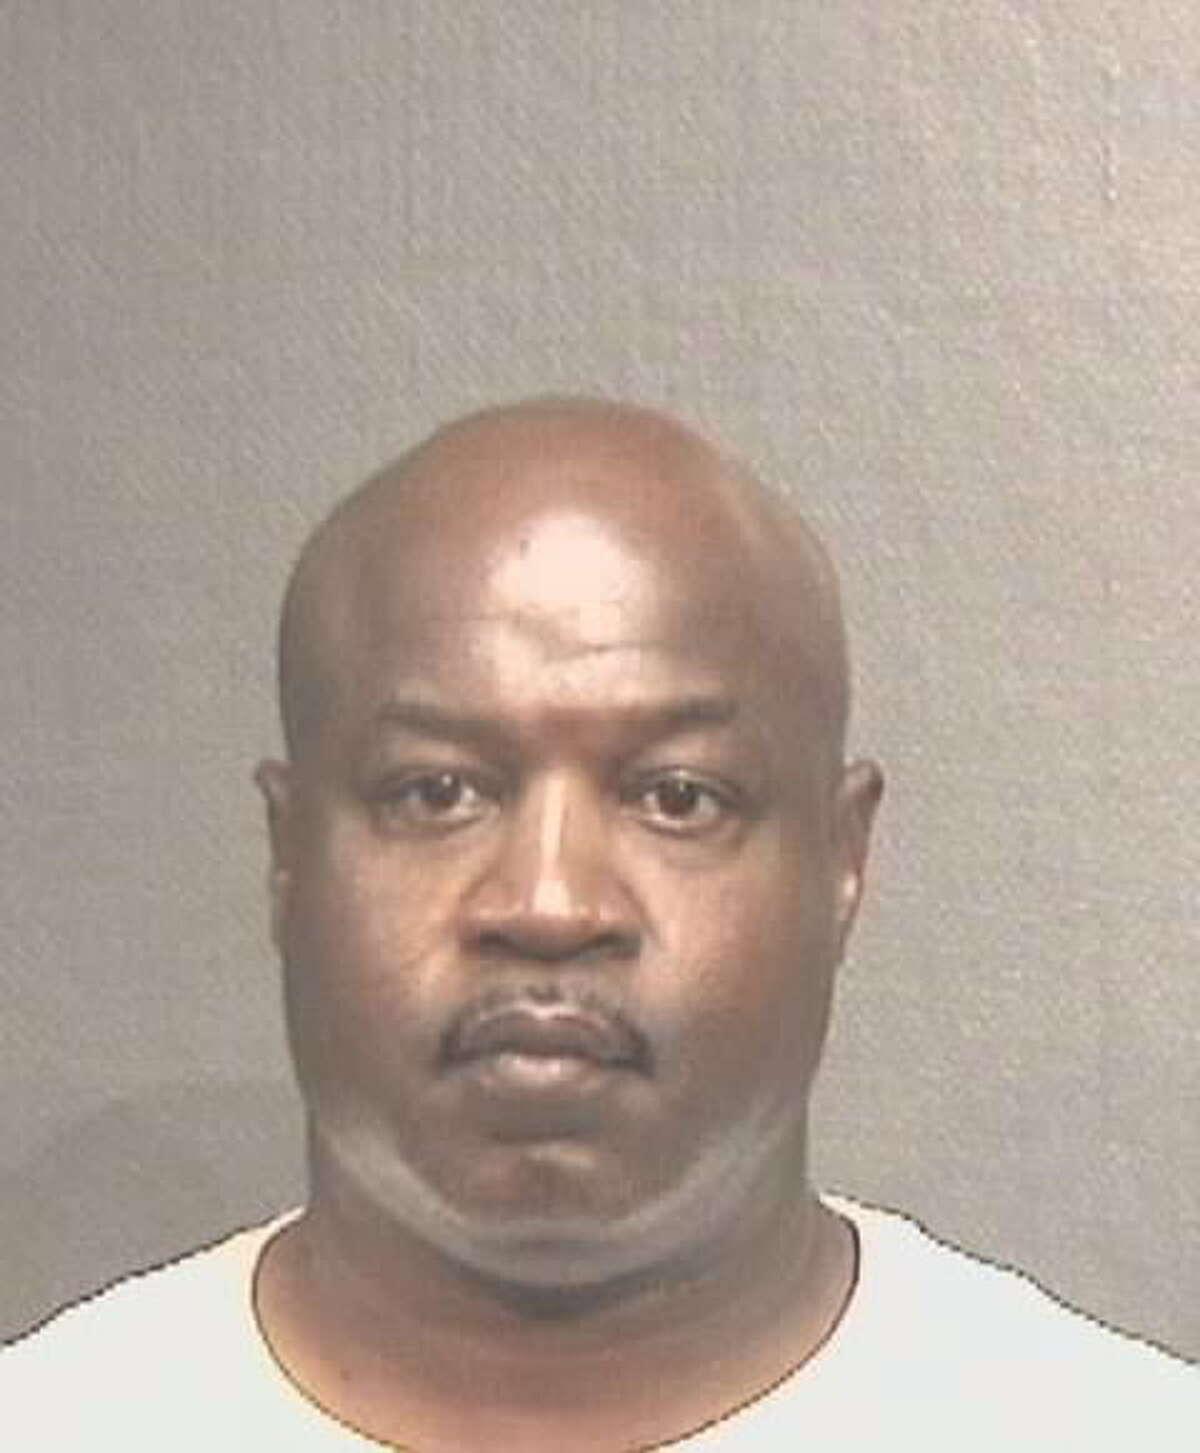 Alex Thompson was one of 69 suspects arrested by the Houston Police Department and charged with either compelling prostitution or soliciting prostitution during the months of June and July 2018.